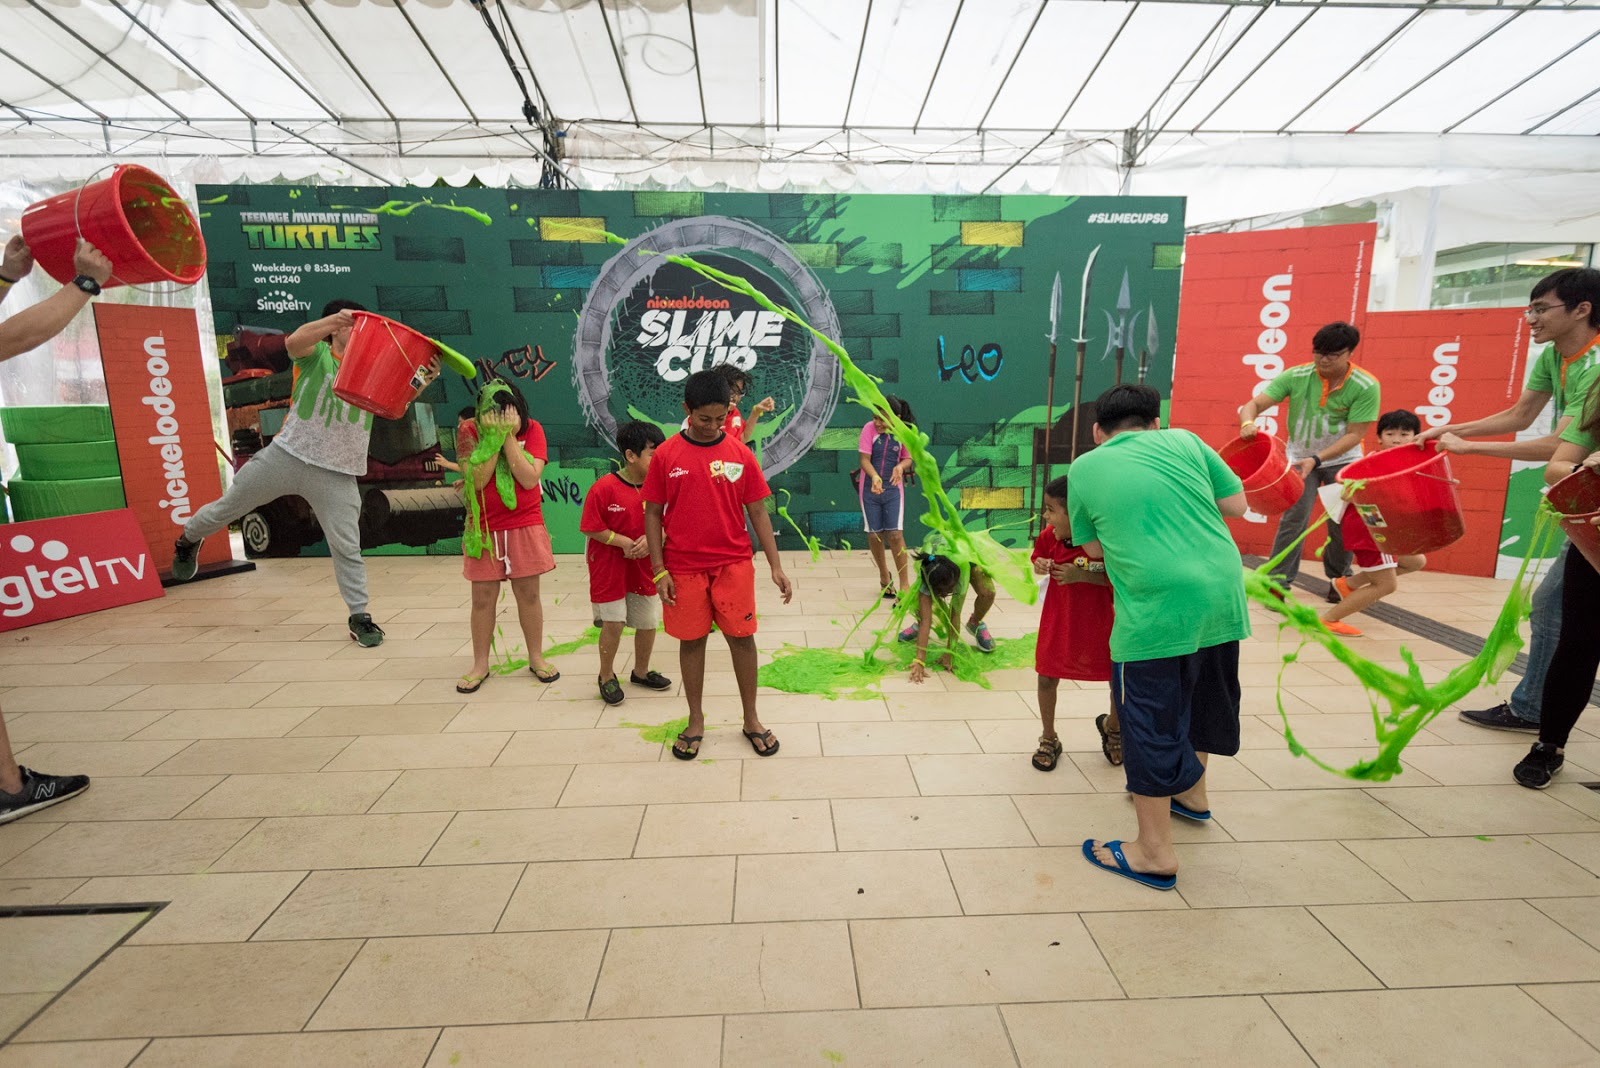 More images from the nickelodeon slime cup event in singapore can be downloaded at the end of this news release